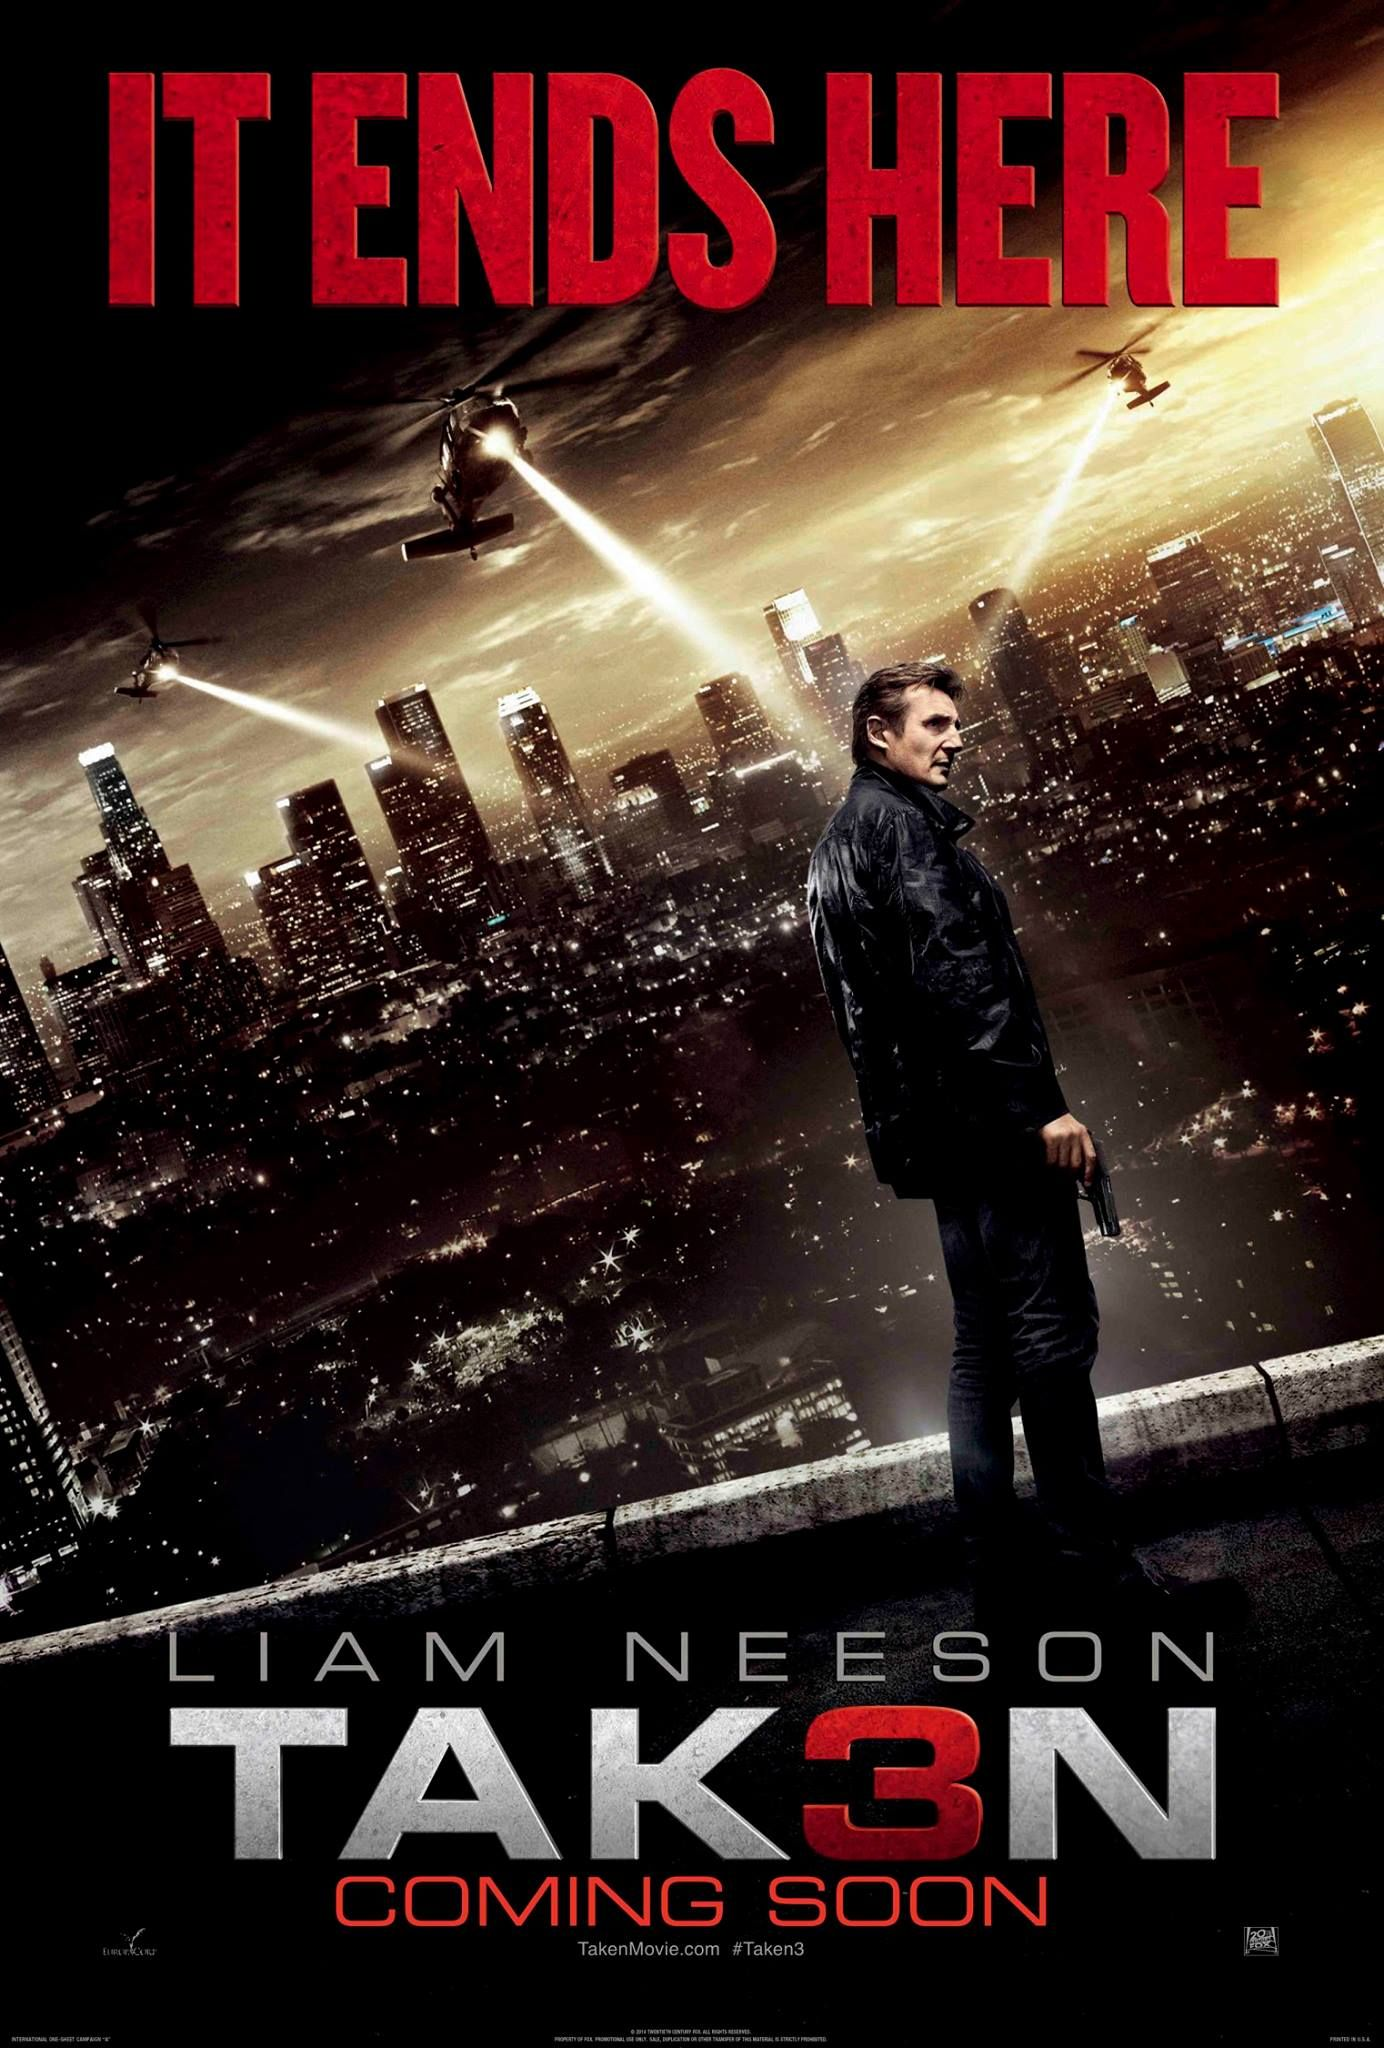 Sees liam neeson back as bryan mills and he is in action in the new trailer for the film